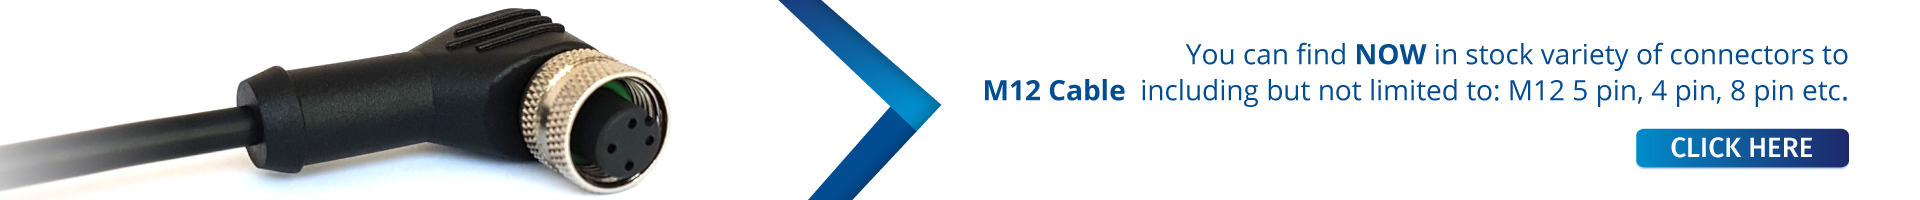 m12 cable